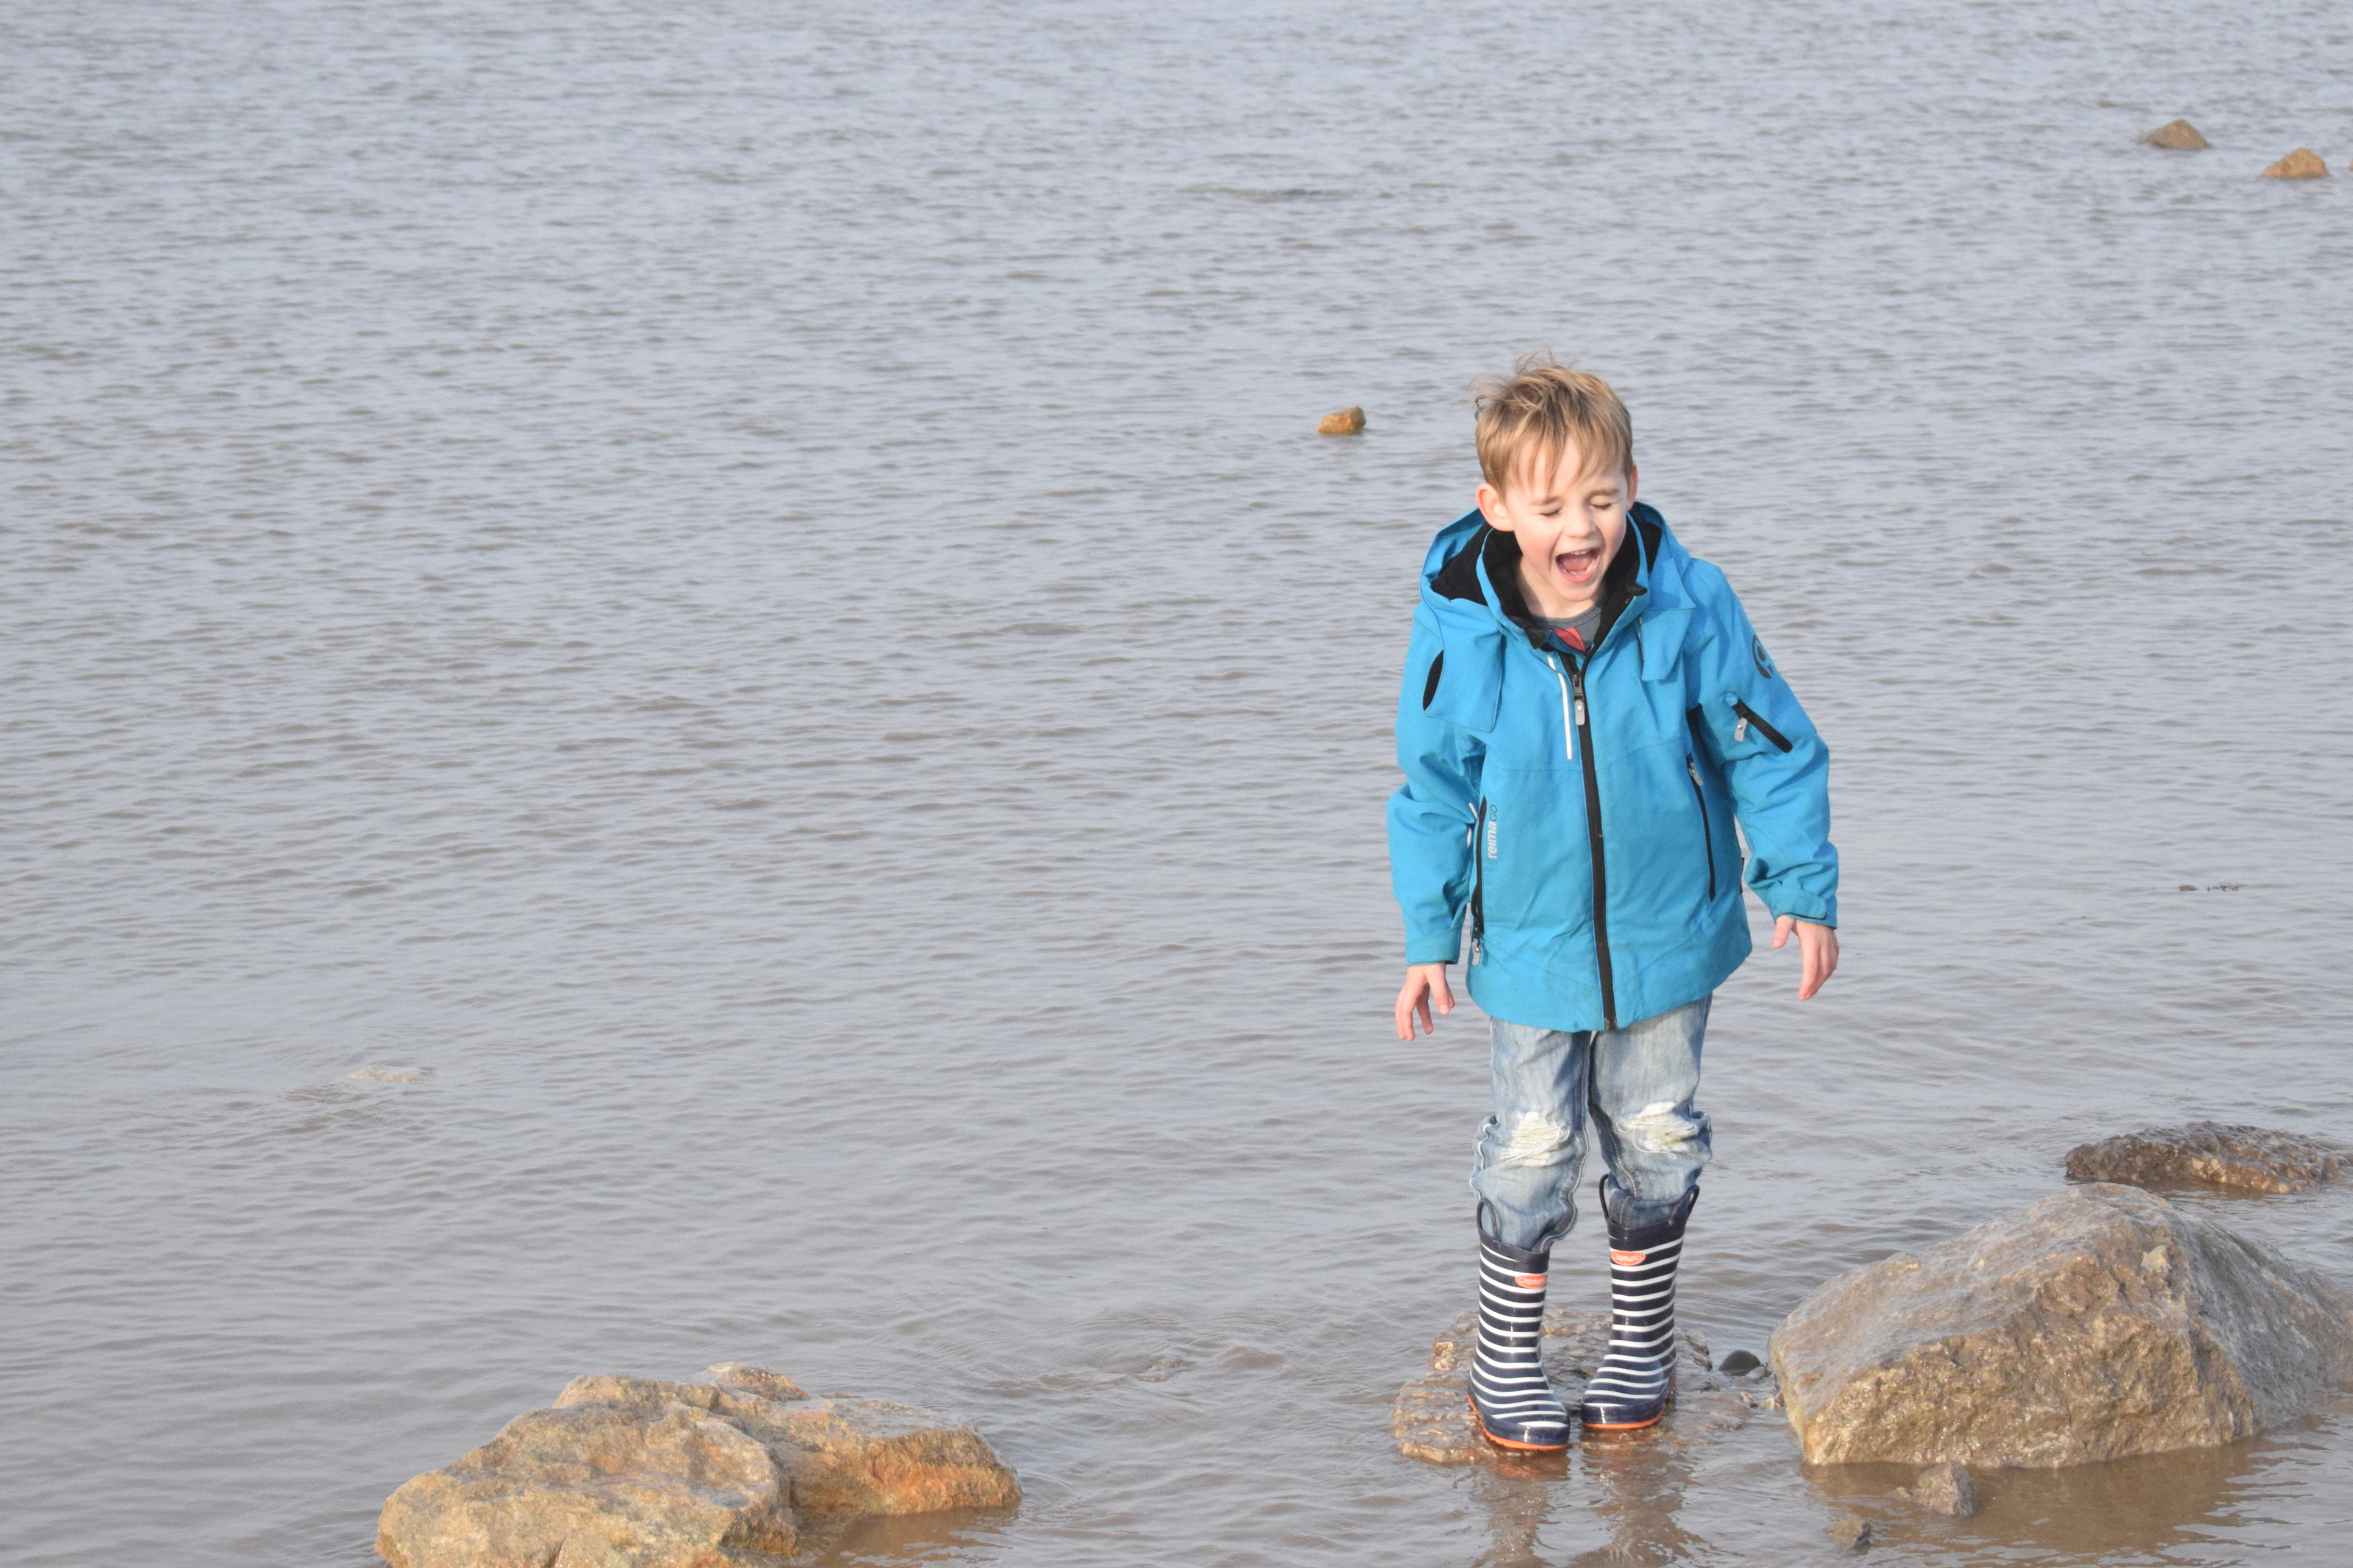 Boy jumping in the sea wearing stripey wellies and blue coat